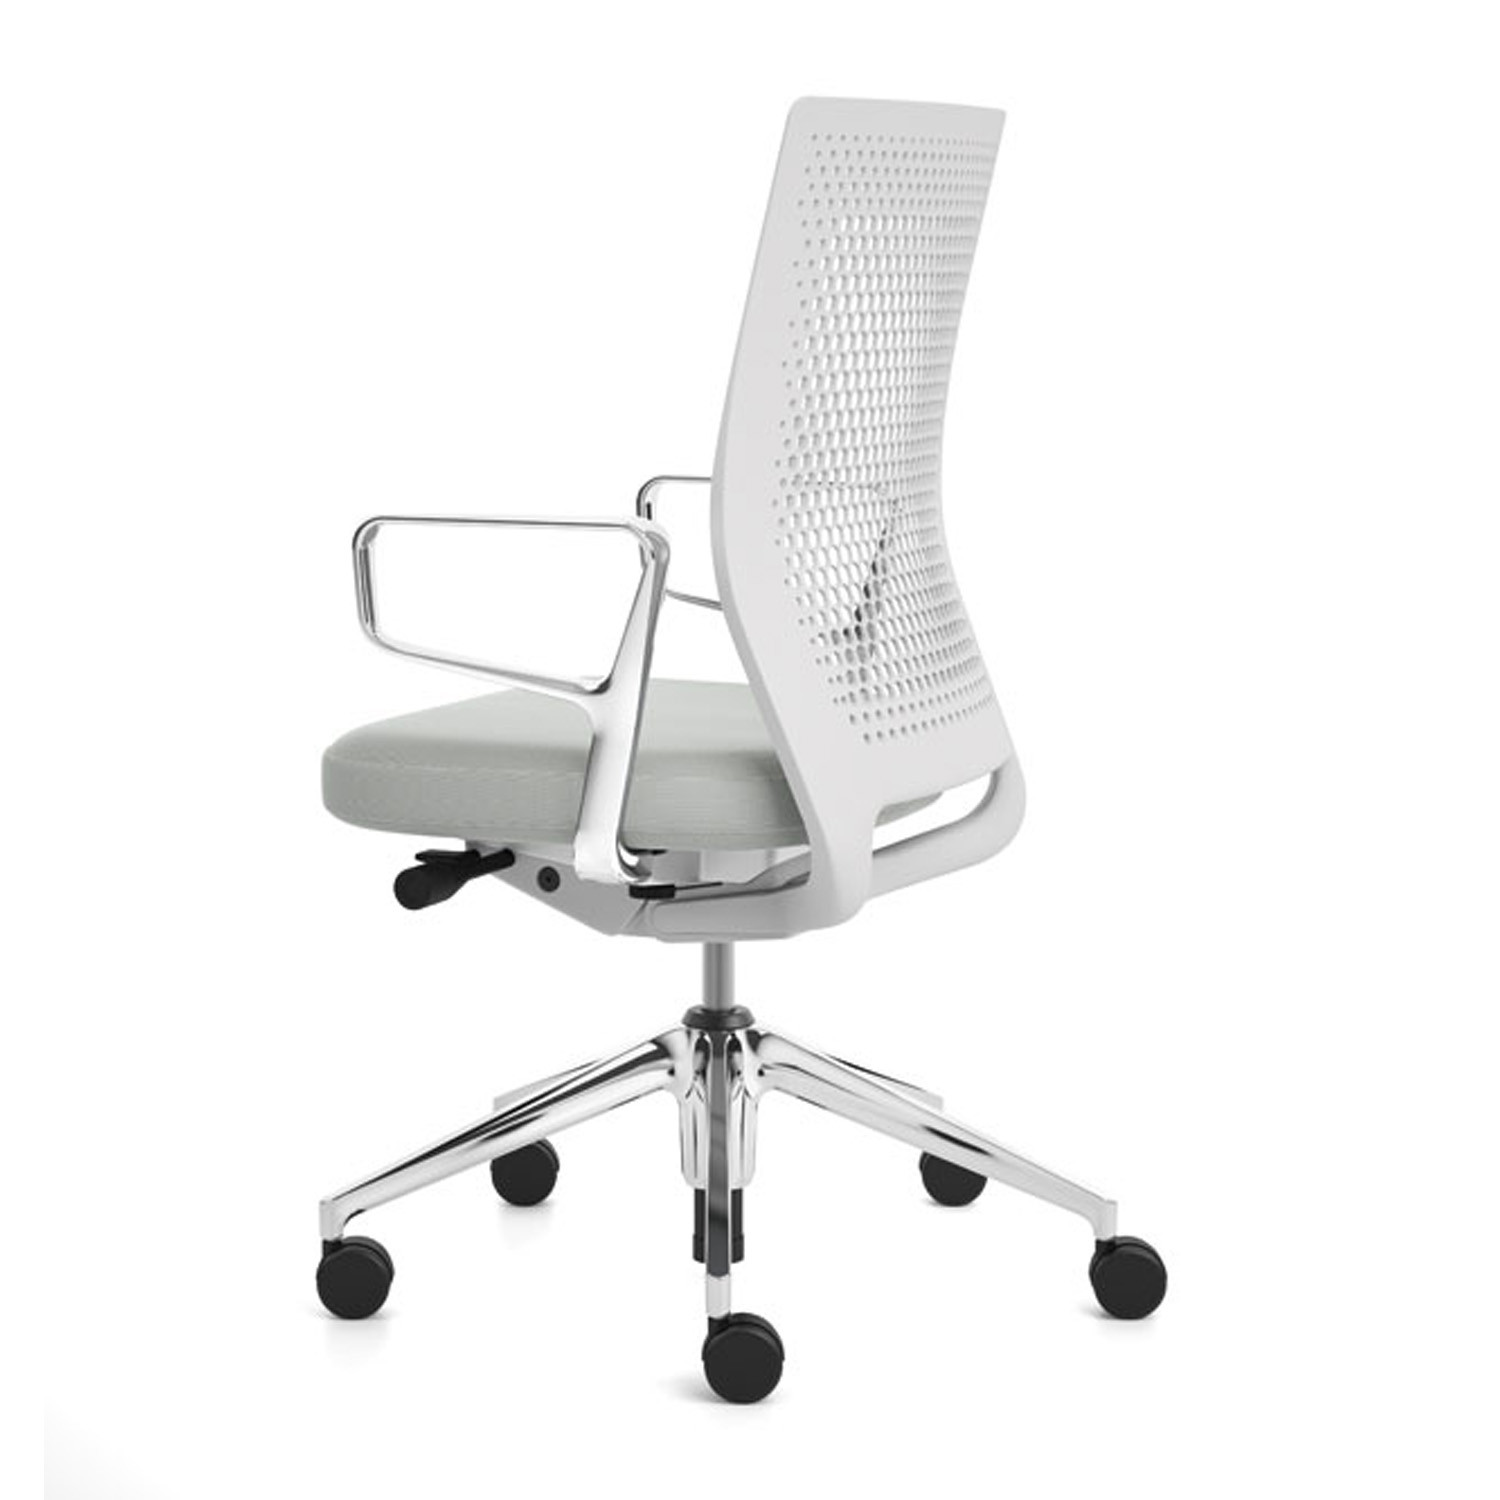 Vitra Office Chair Id Air Office Chair Vitra Modern Office Chairs Apres